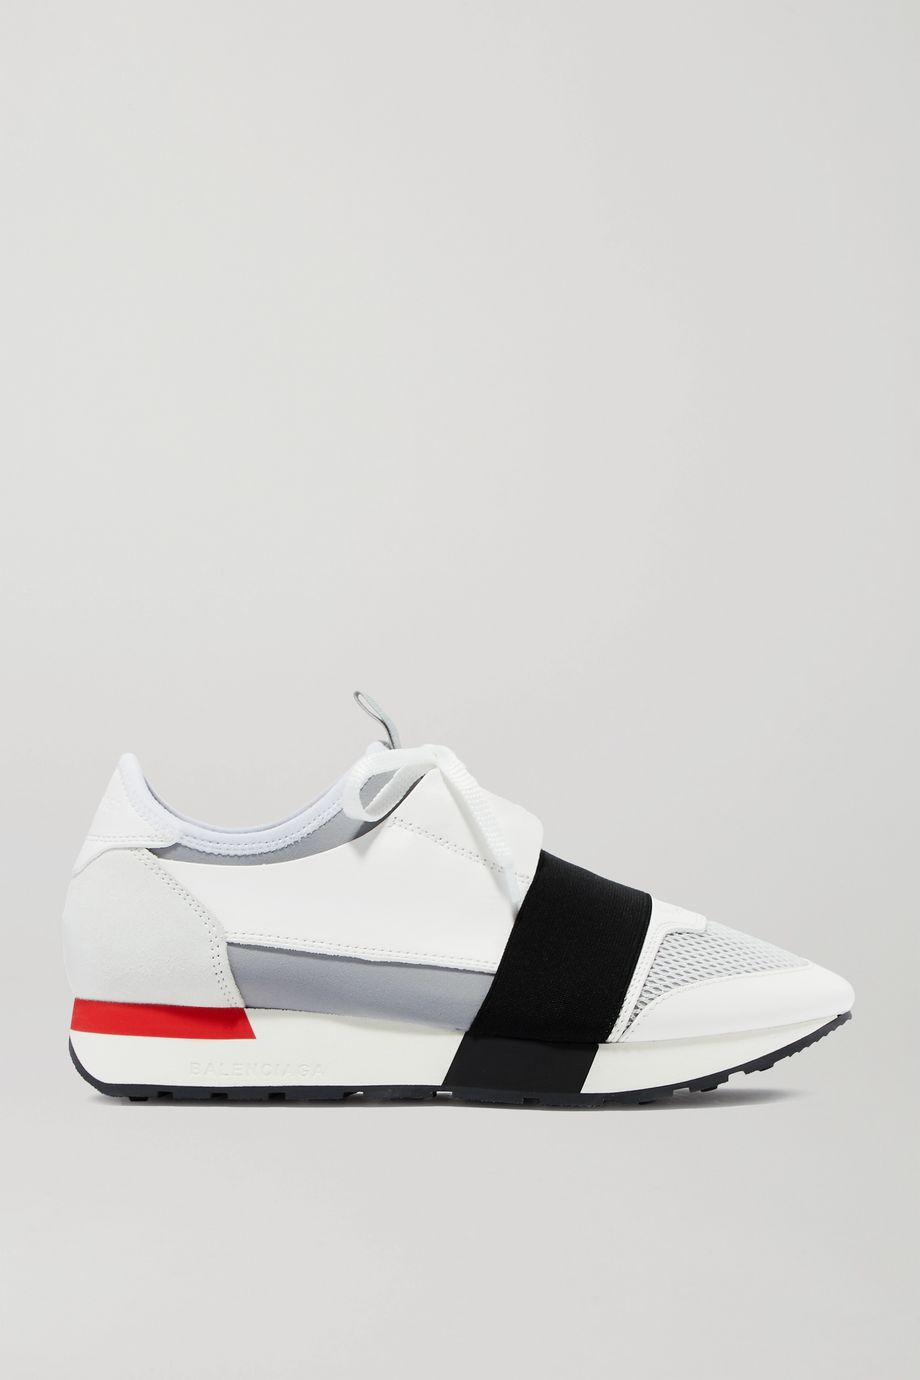 Balenciaga Race Runner leather, suede, mesh and neoprene sneakers